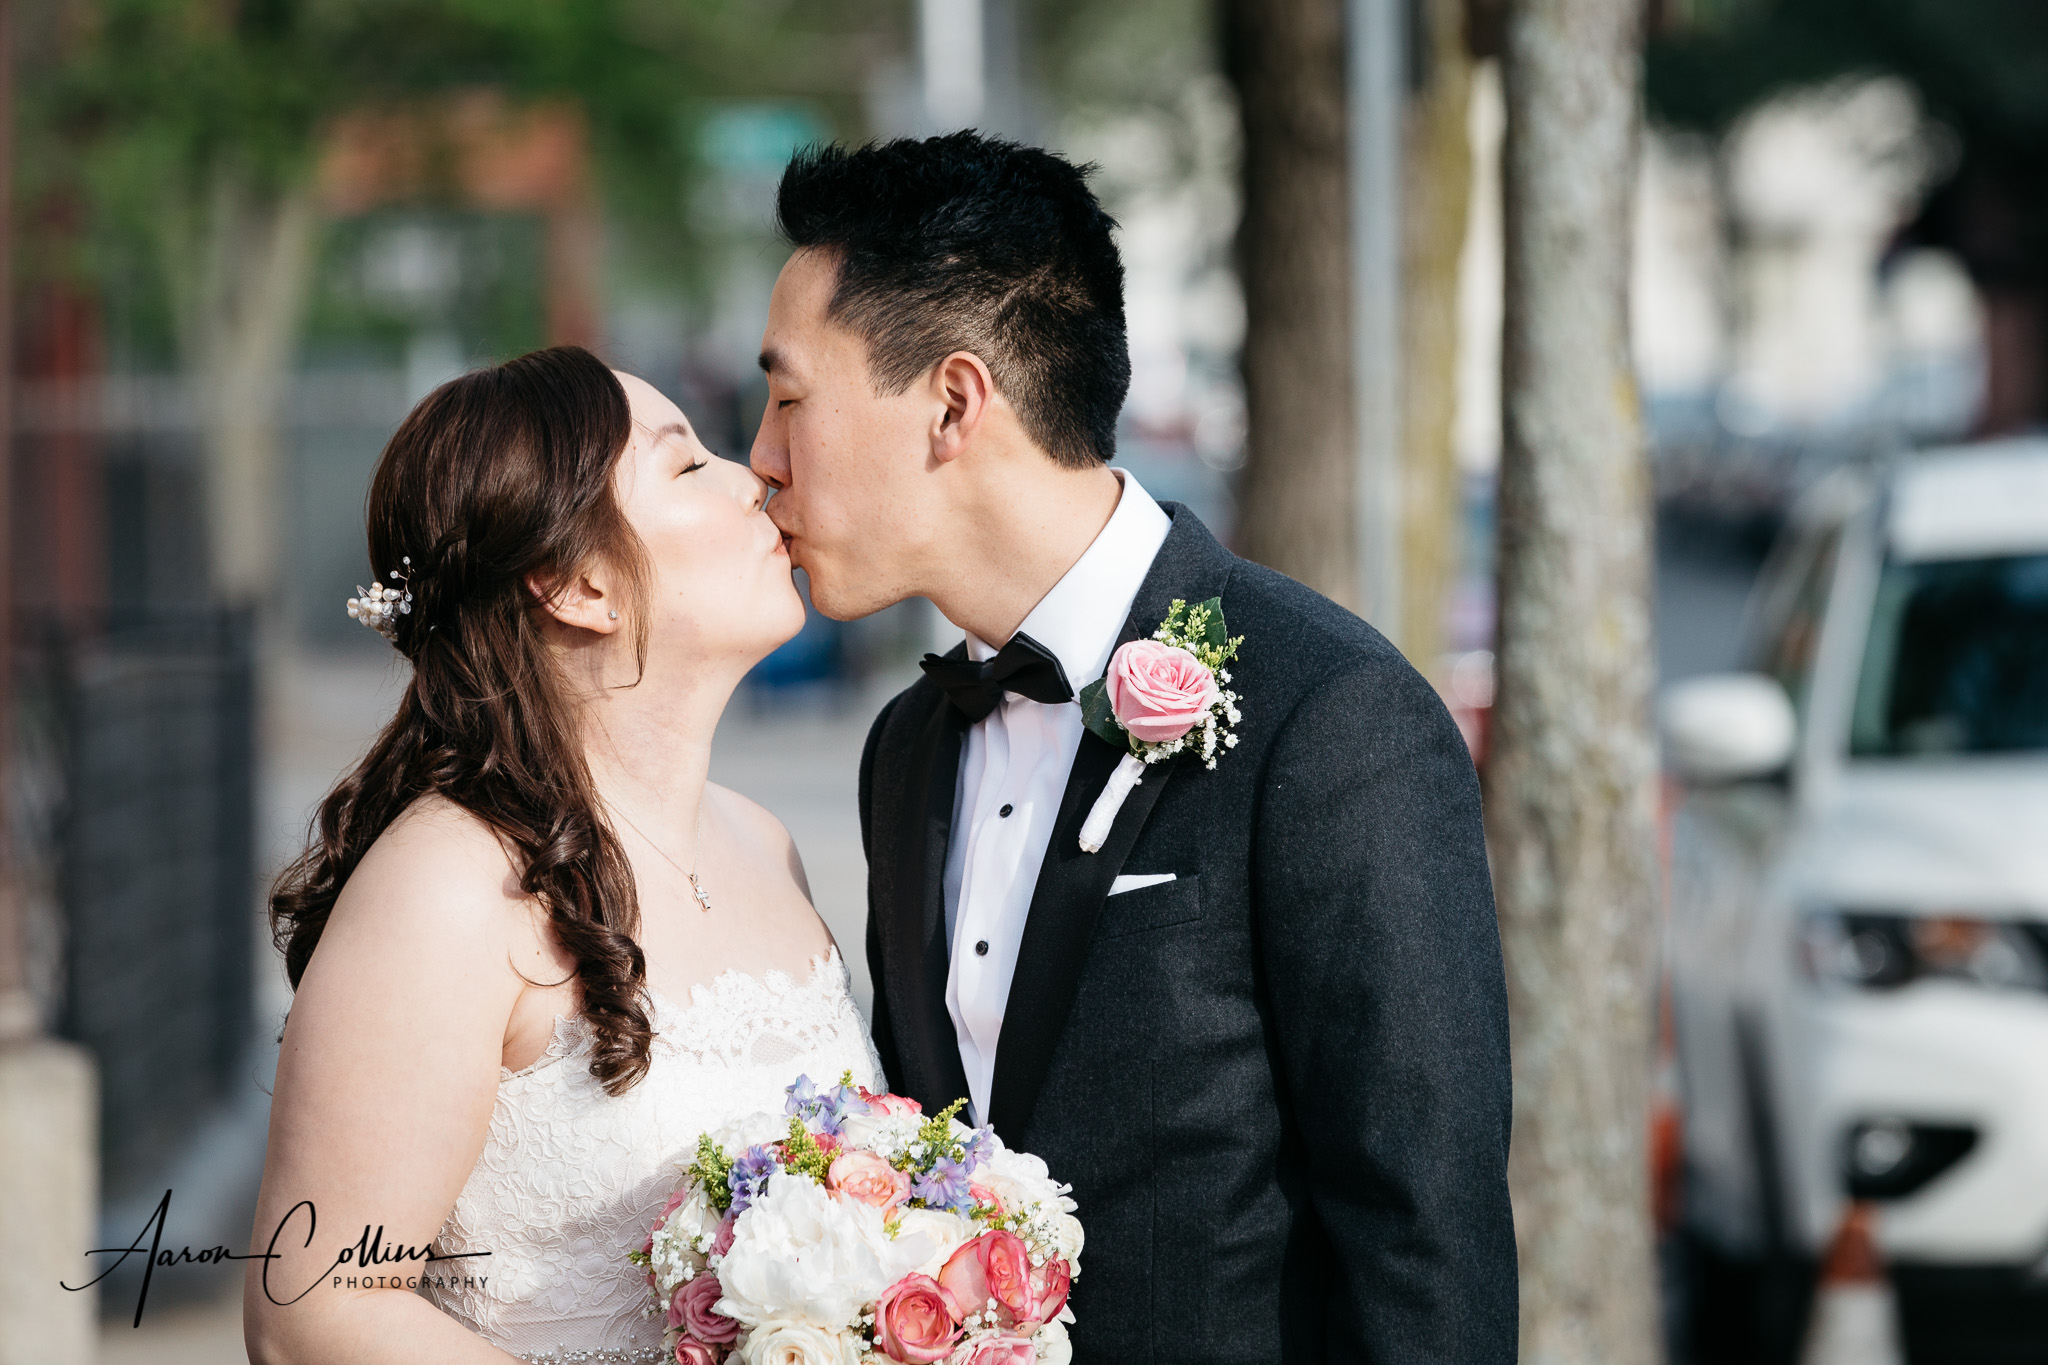 Bride and groom share a kiss on the street in cambridge